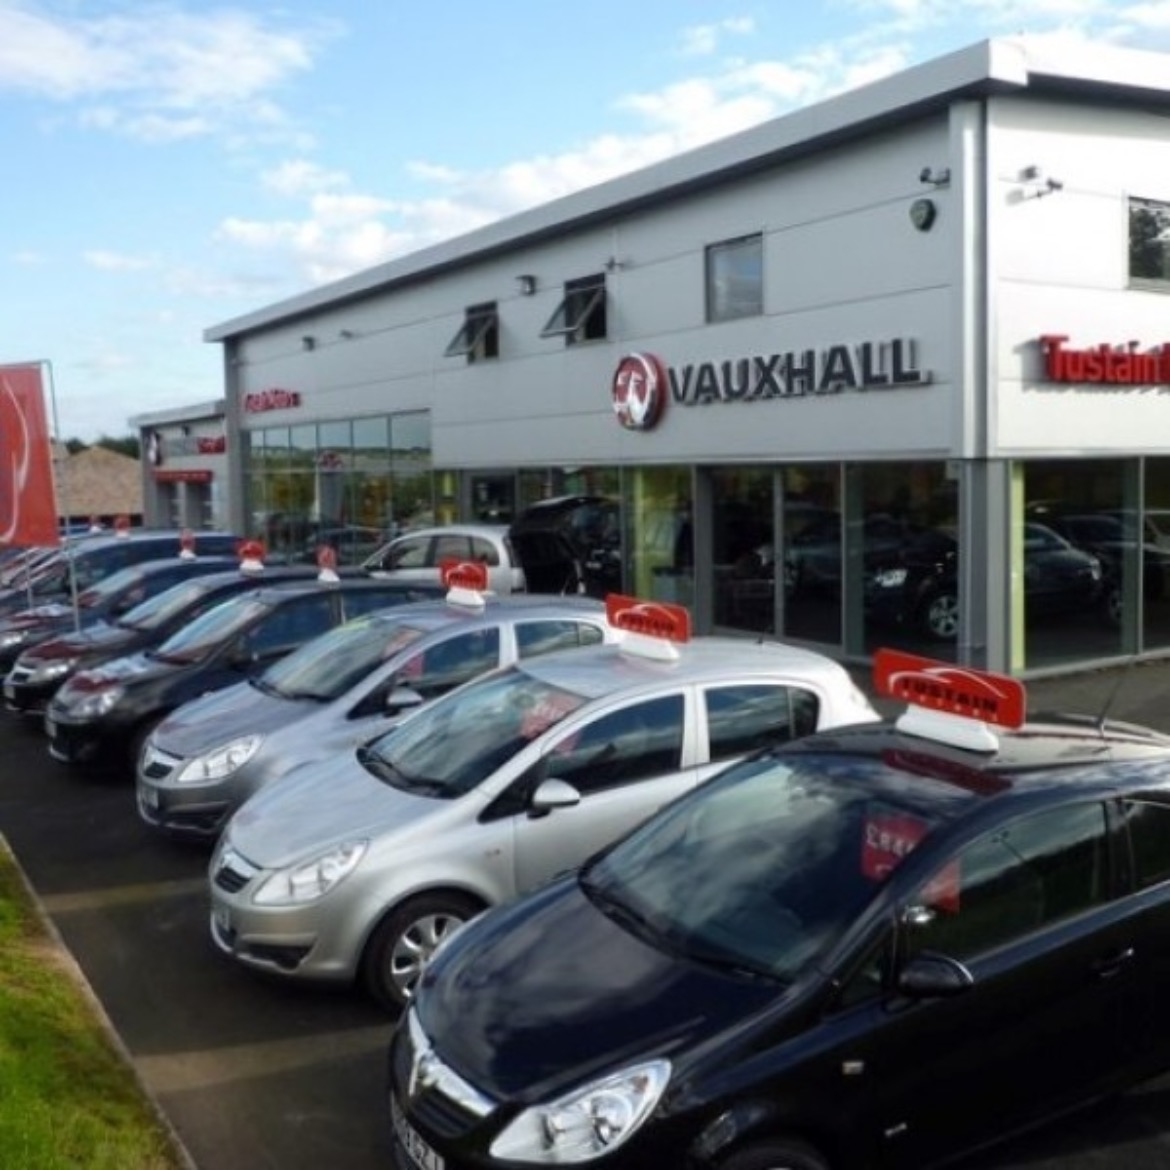 Tustain Vauxhall Dealership